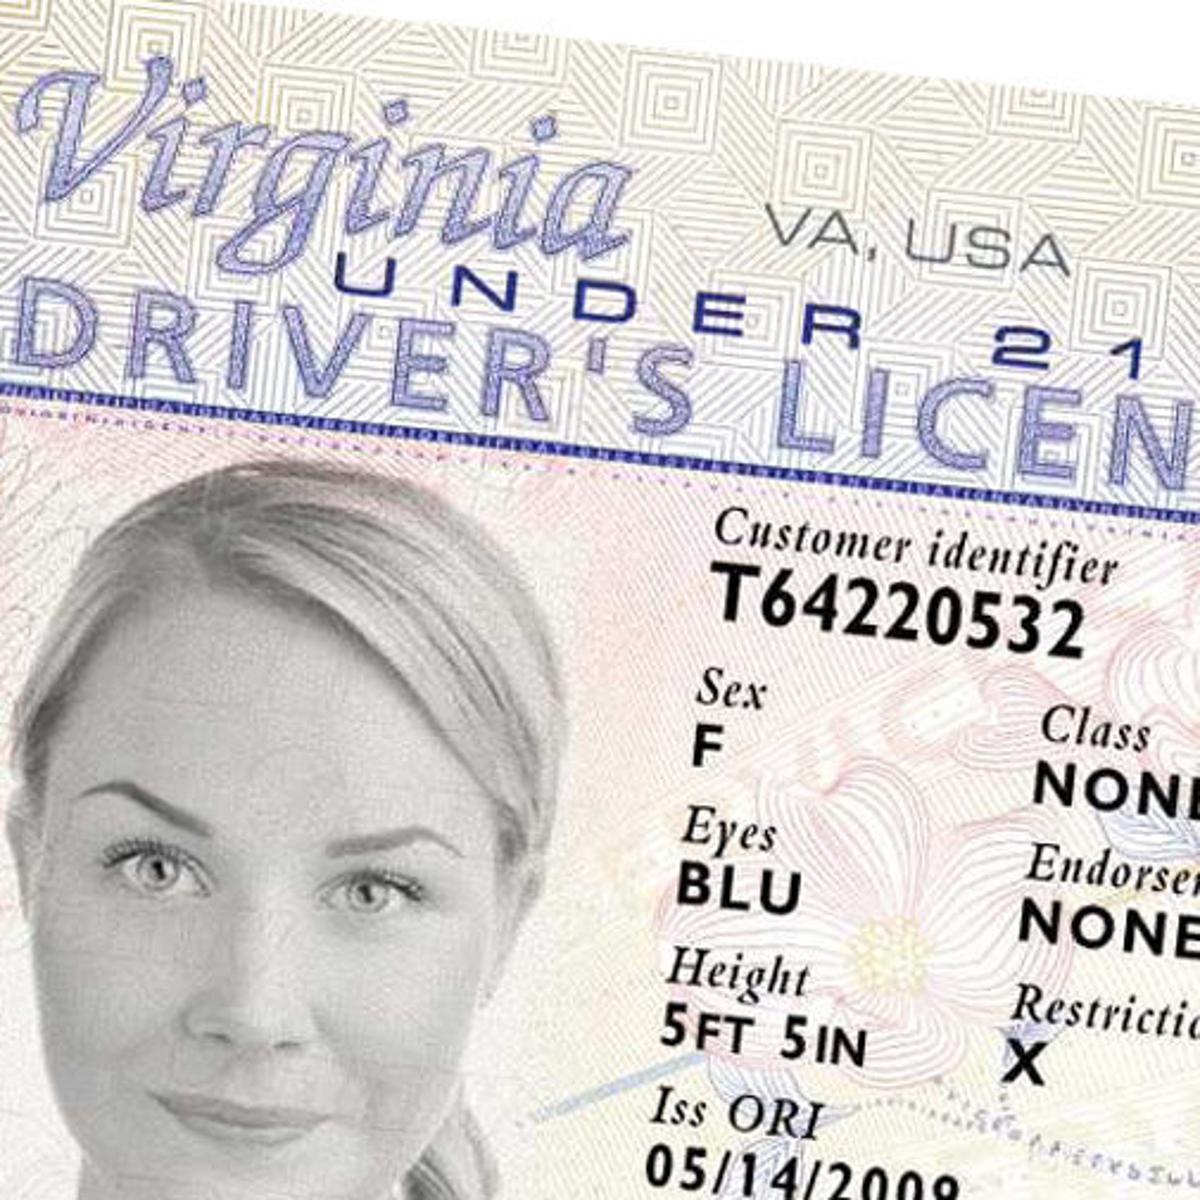 New study critical of Virginia driver's license suspensions